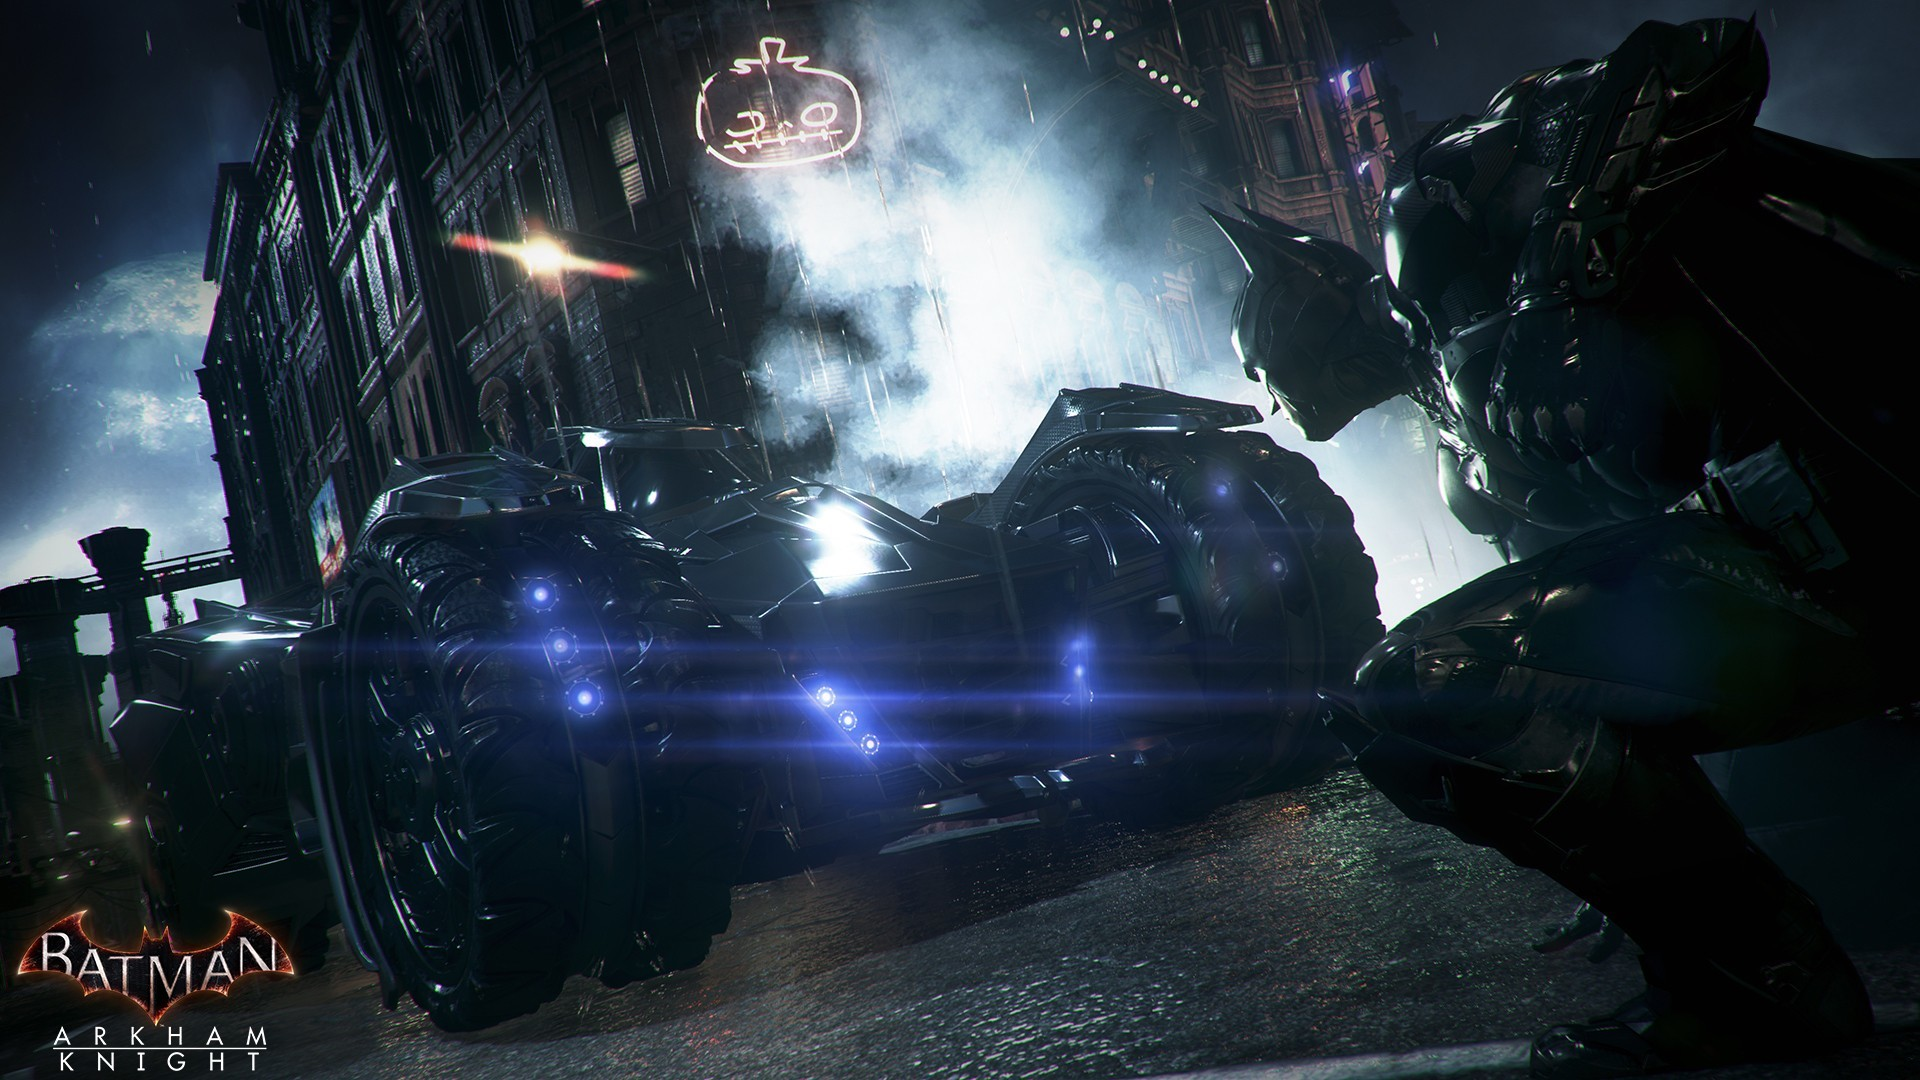 1920x1080 Batman Arkham Knight Backgrounds Free Download.